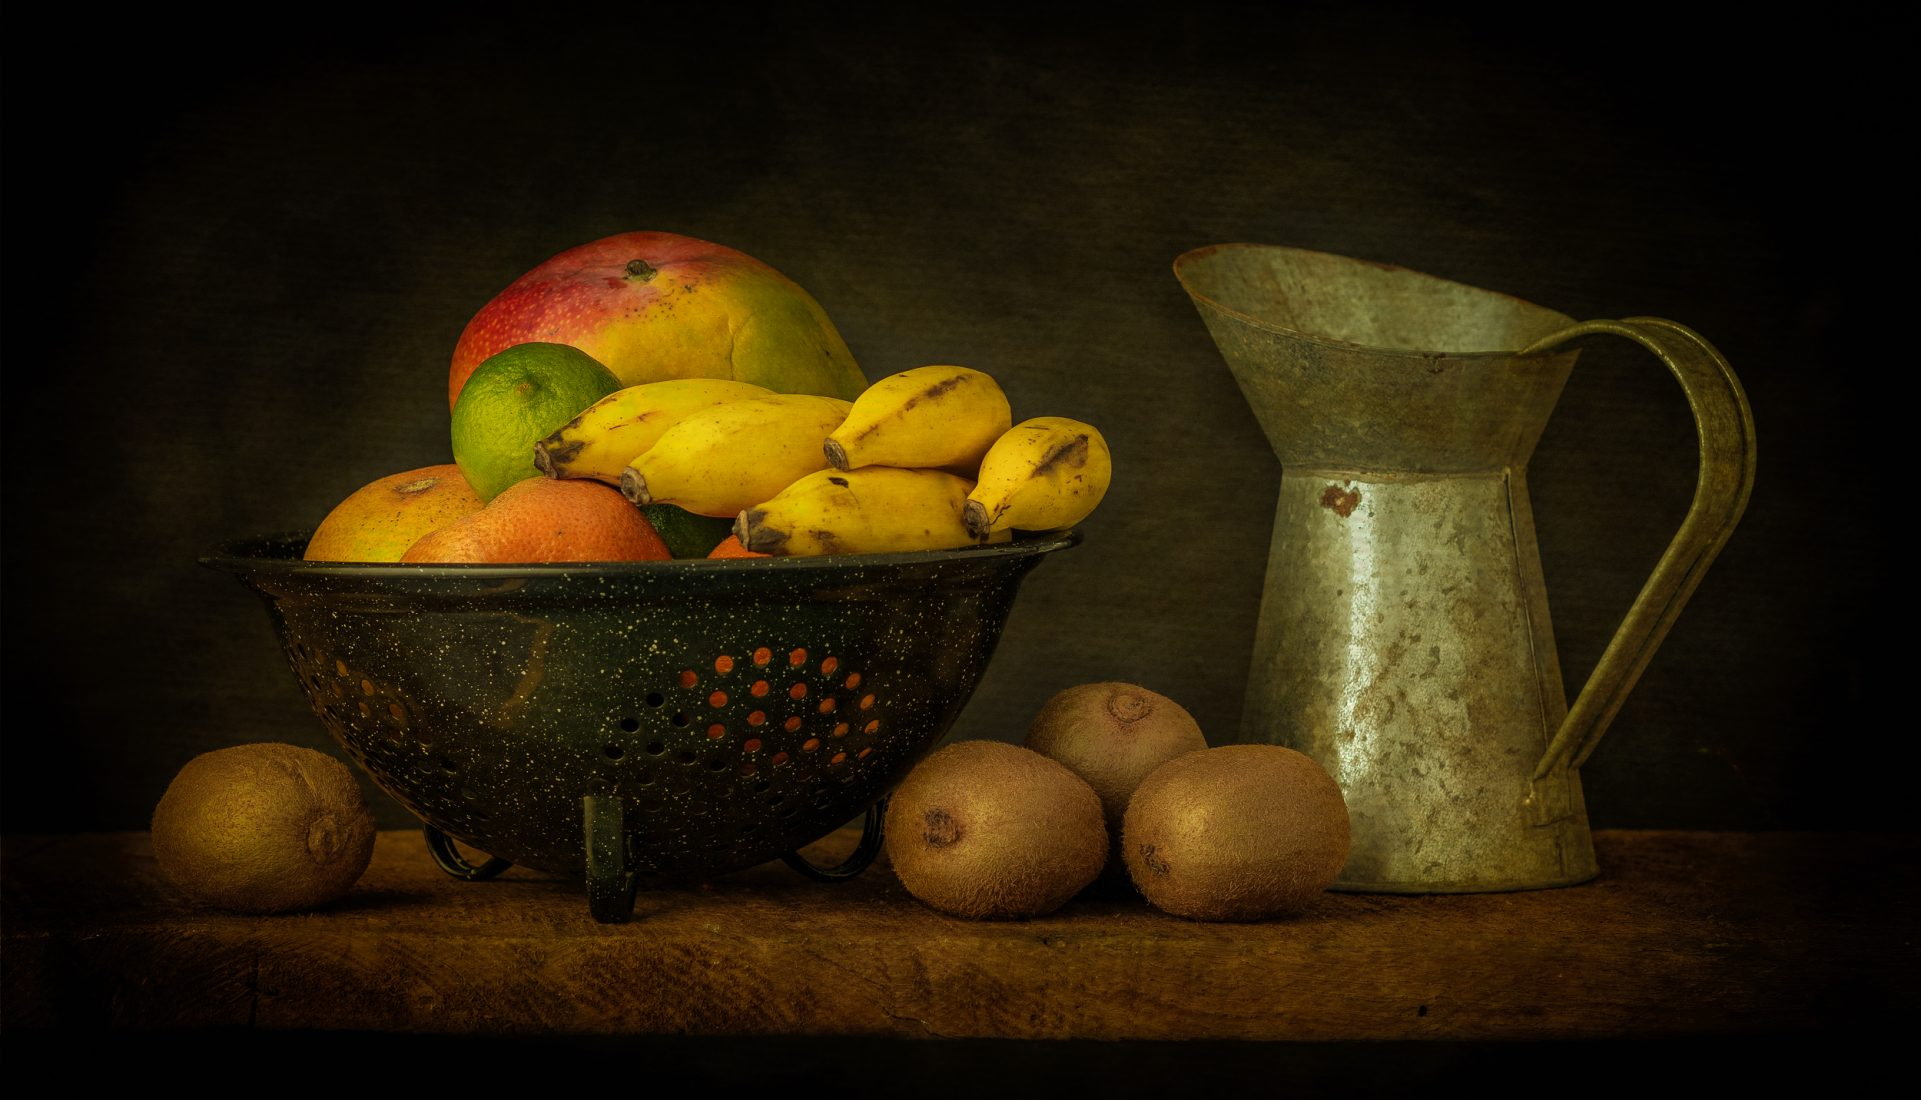 Still Life and the Creative Process